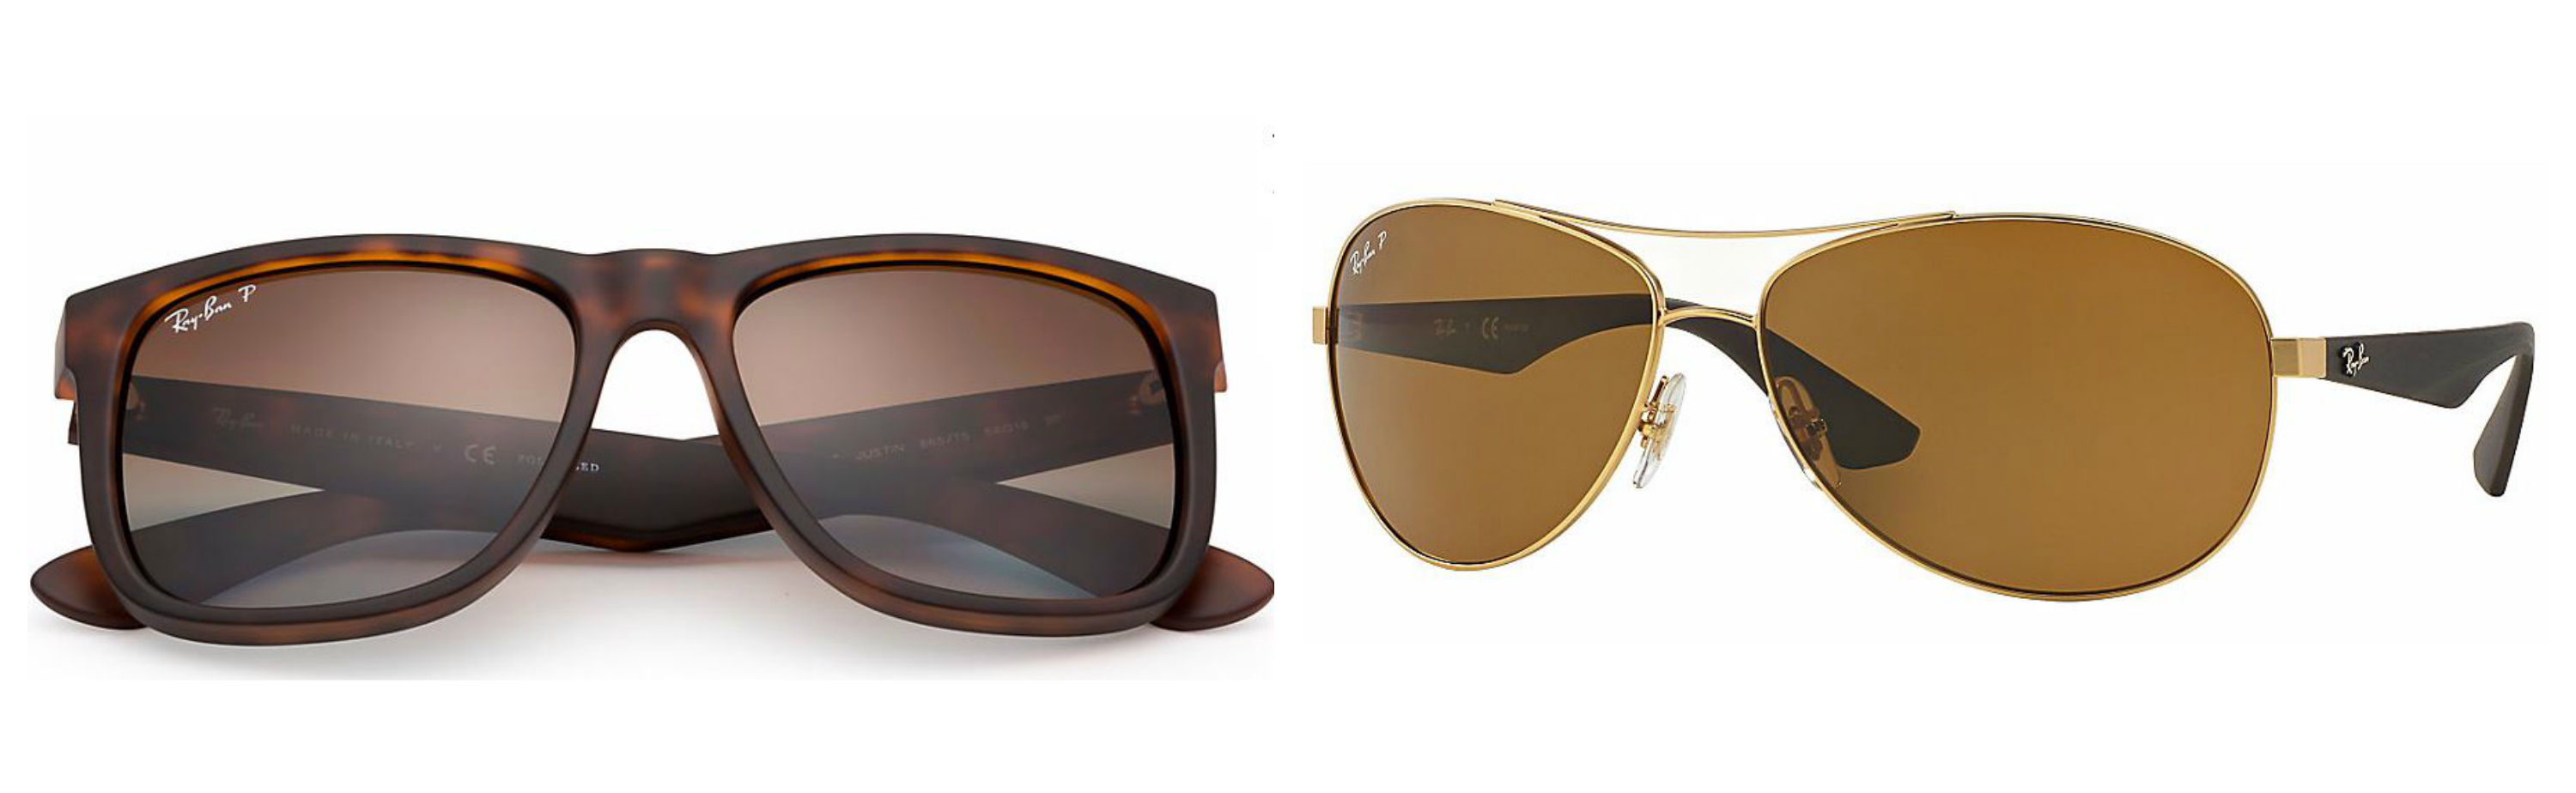 Polarized Sunglasses | Drink the Day